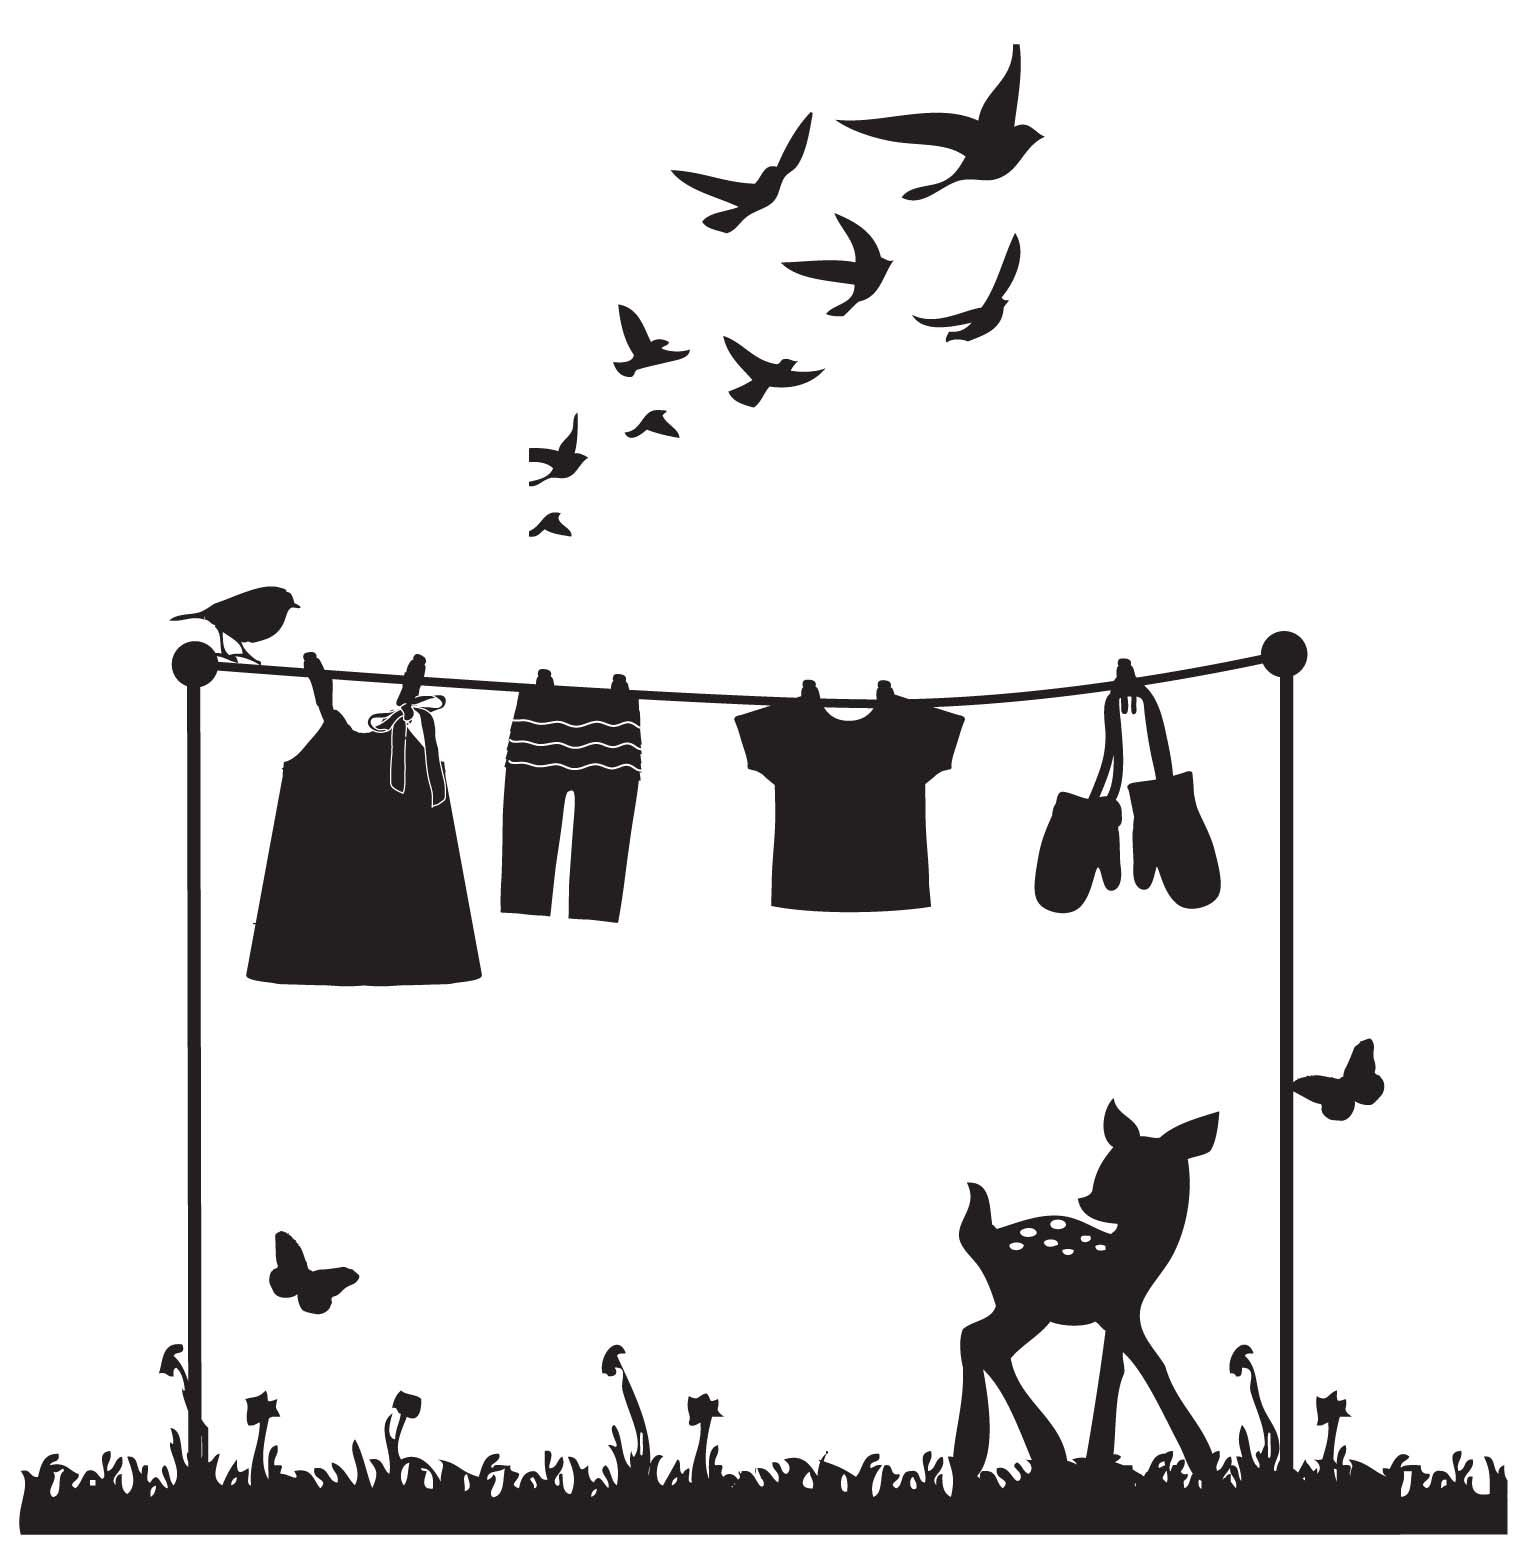 Silhouette art, clothesline with fawn clothes-line